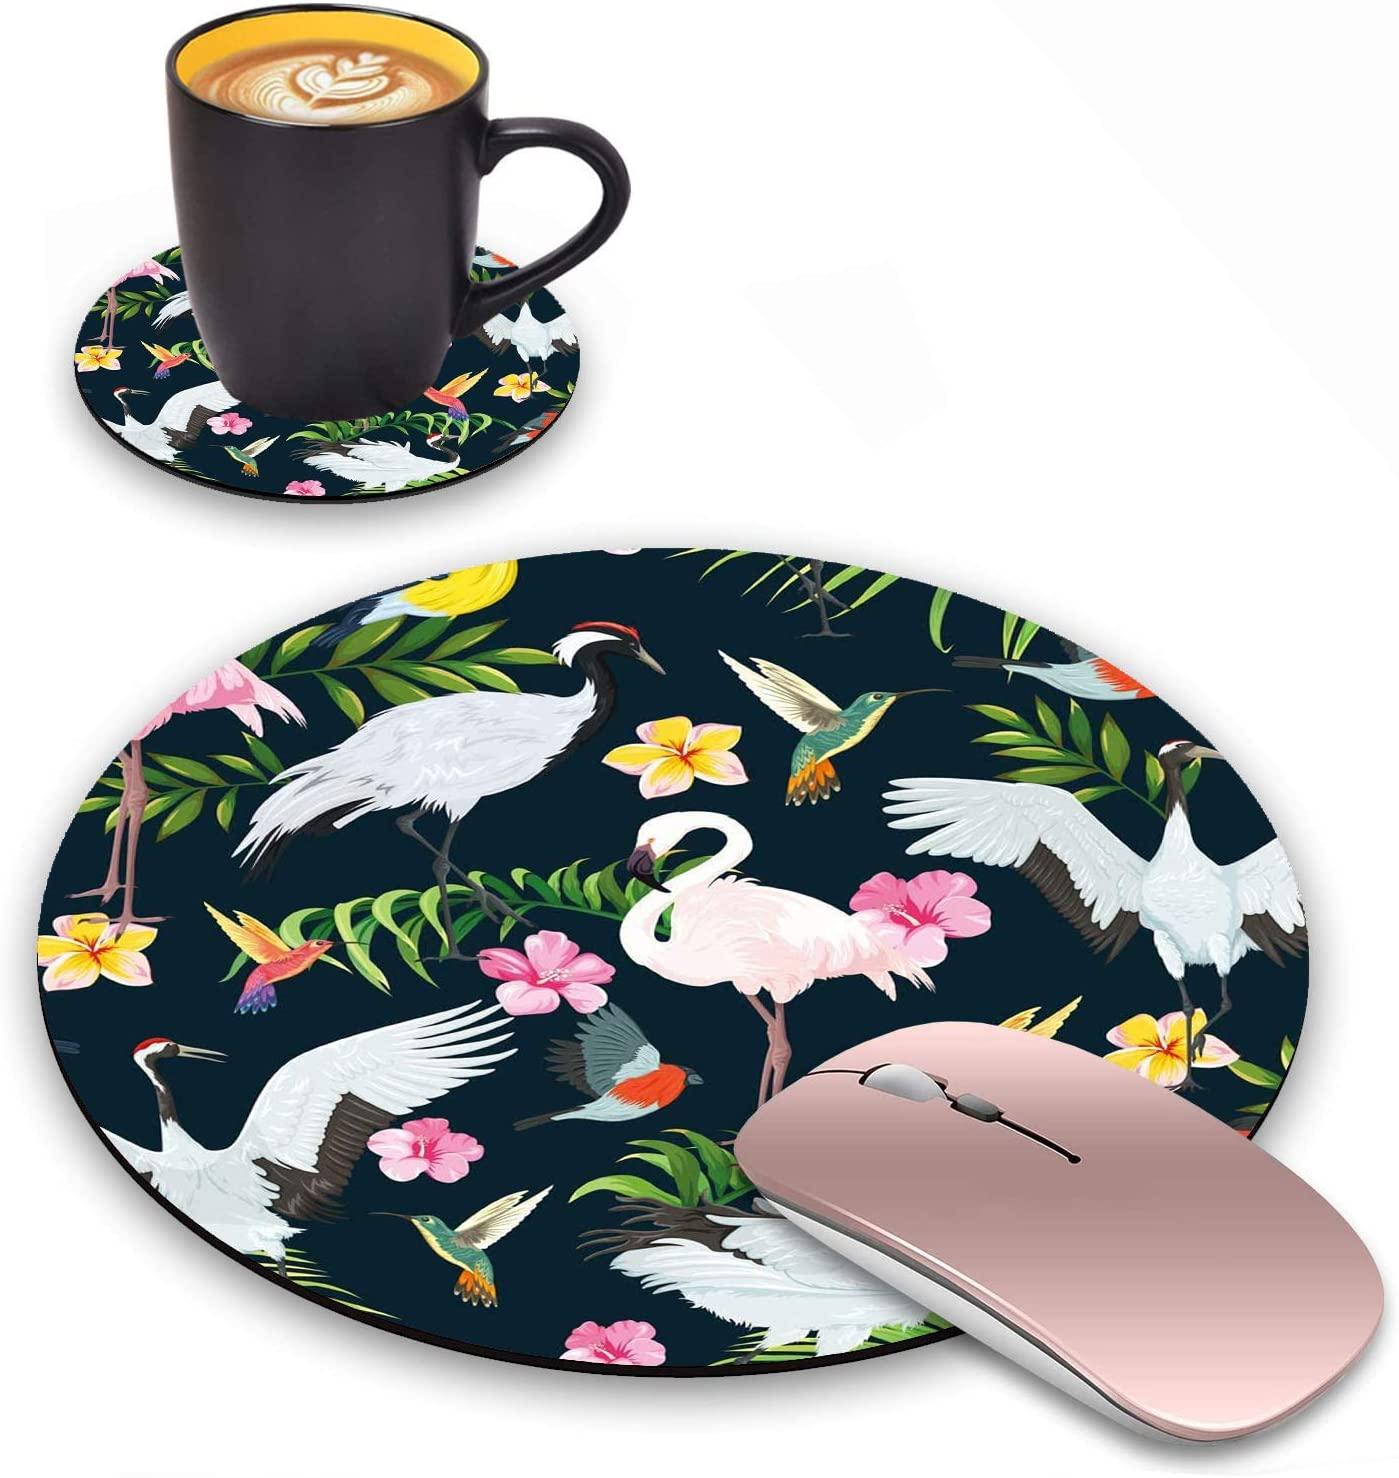 LACOMA Max 85% OFF Round Mouse Pad and Set Flamingo Tropical G All stores are sold Coasters